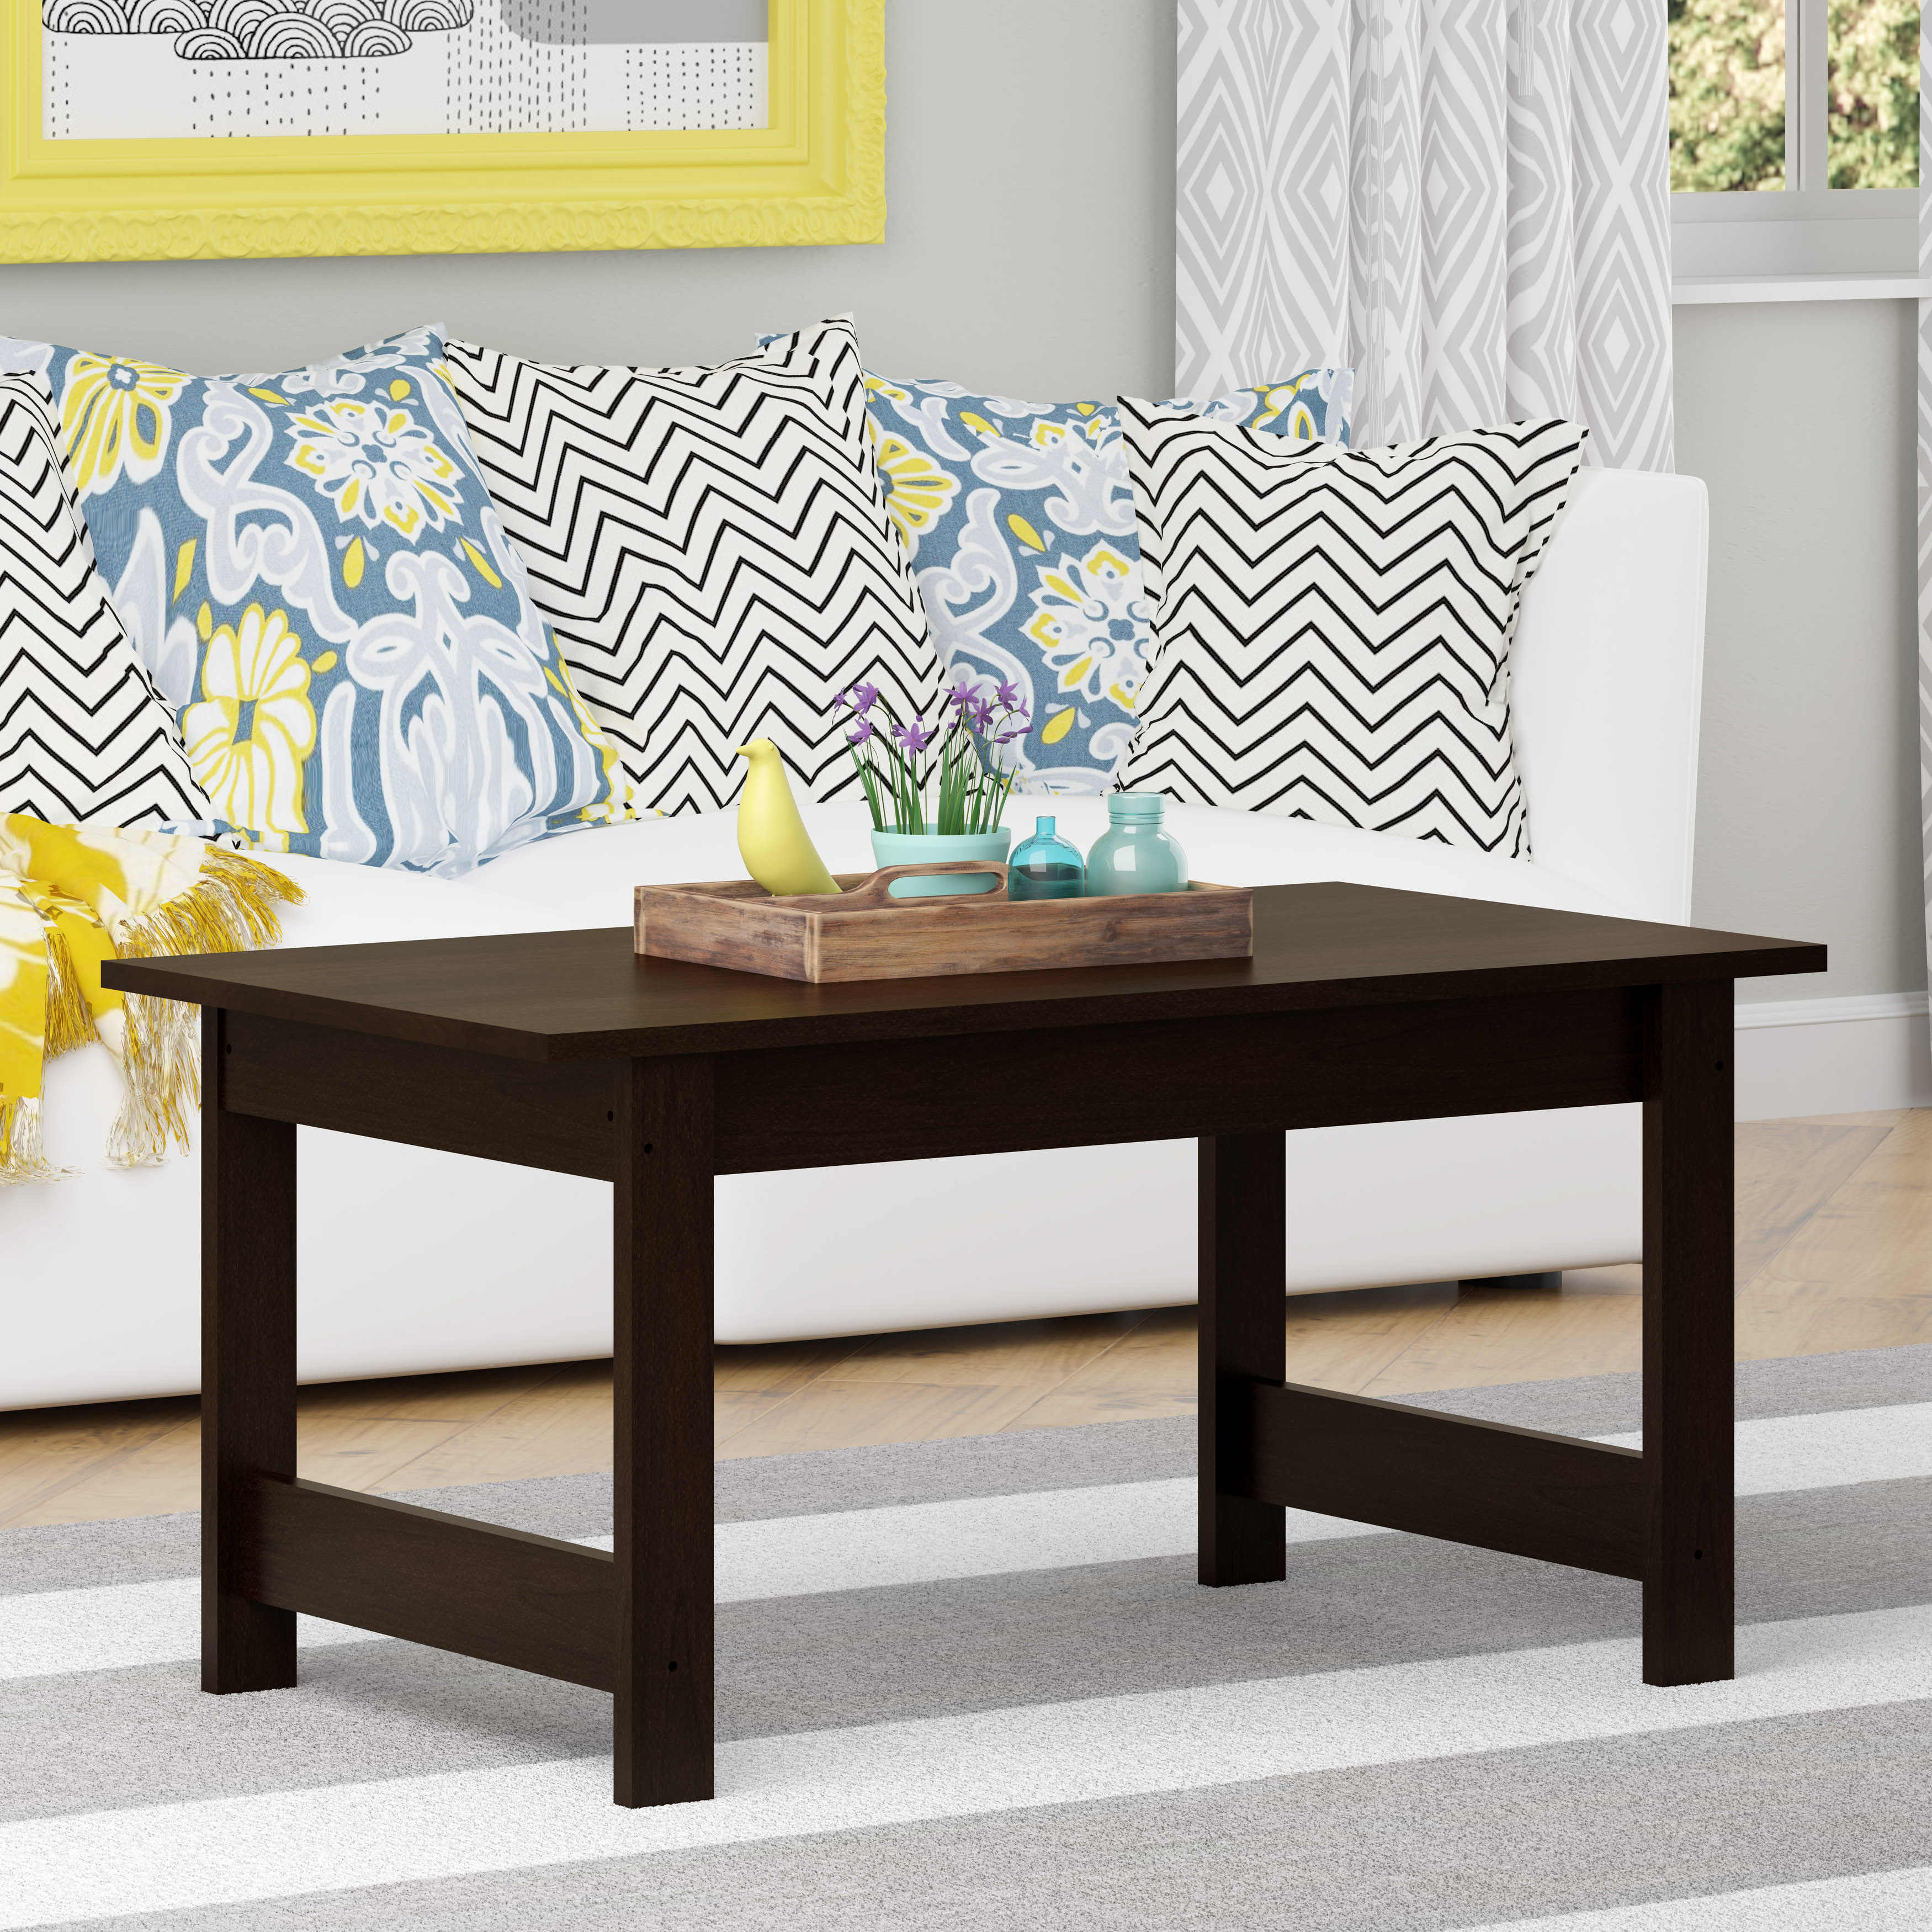 good coffee table cherry prod black side kmart patio furniture collections loveseat sleeper unusual tables square runner ikea breakfast dining room sets round wood glass set small